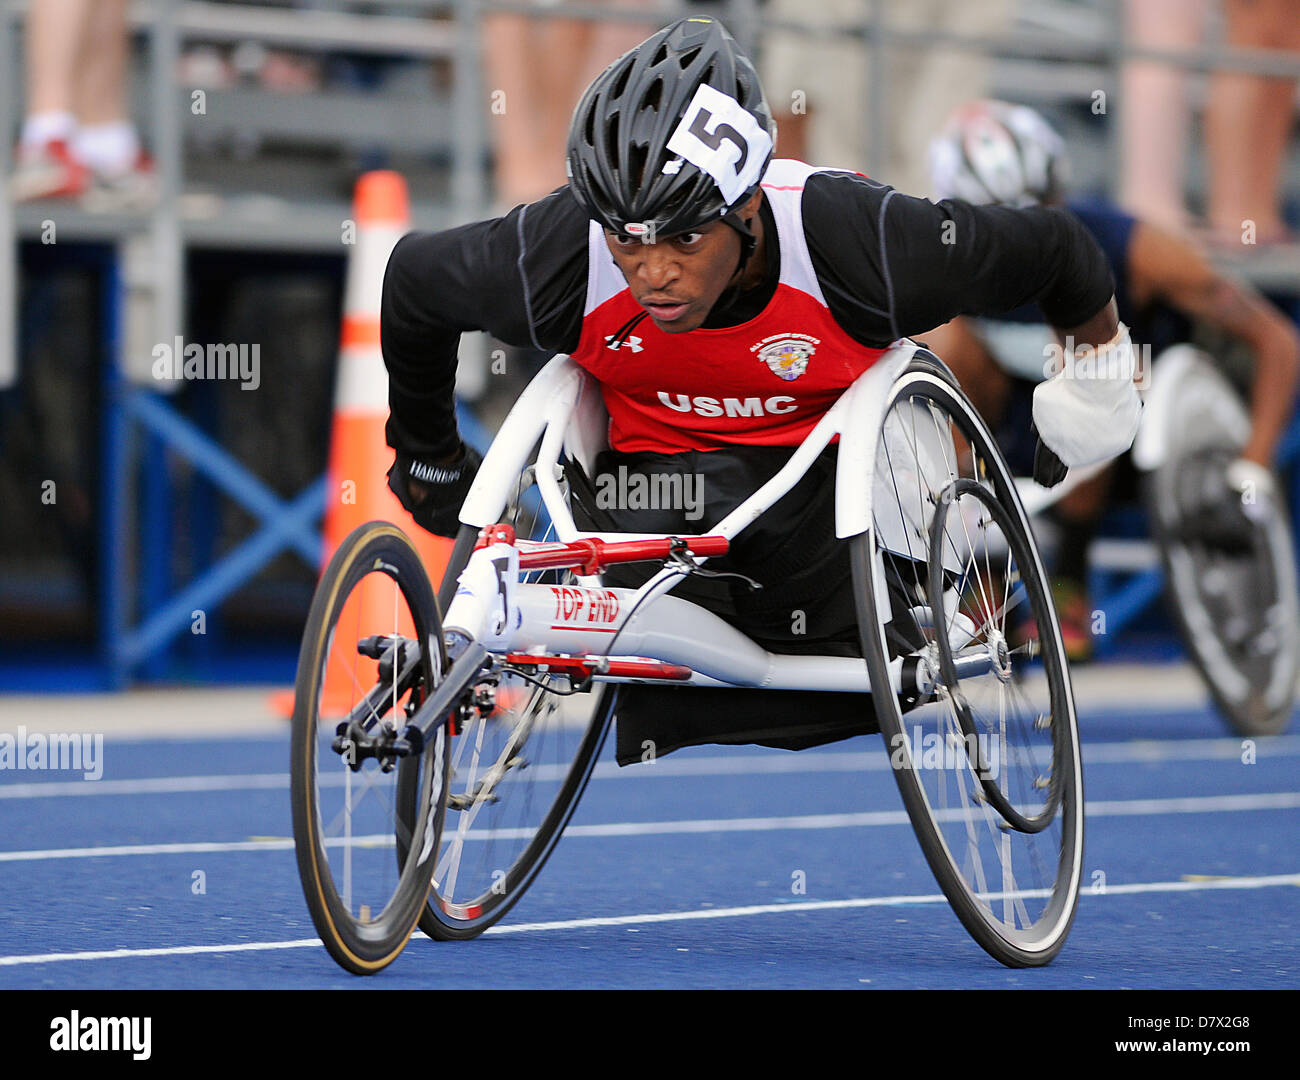 Colorado Springs, USA. 14th May 2013. Marine Corps wounded warrior, Anthony McDonald, in the men's 200 meter wheelchair Stock Photo